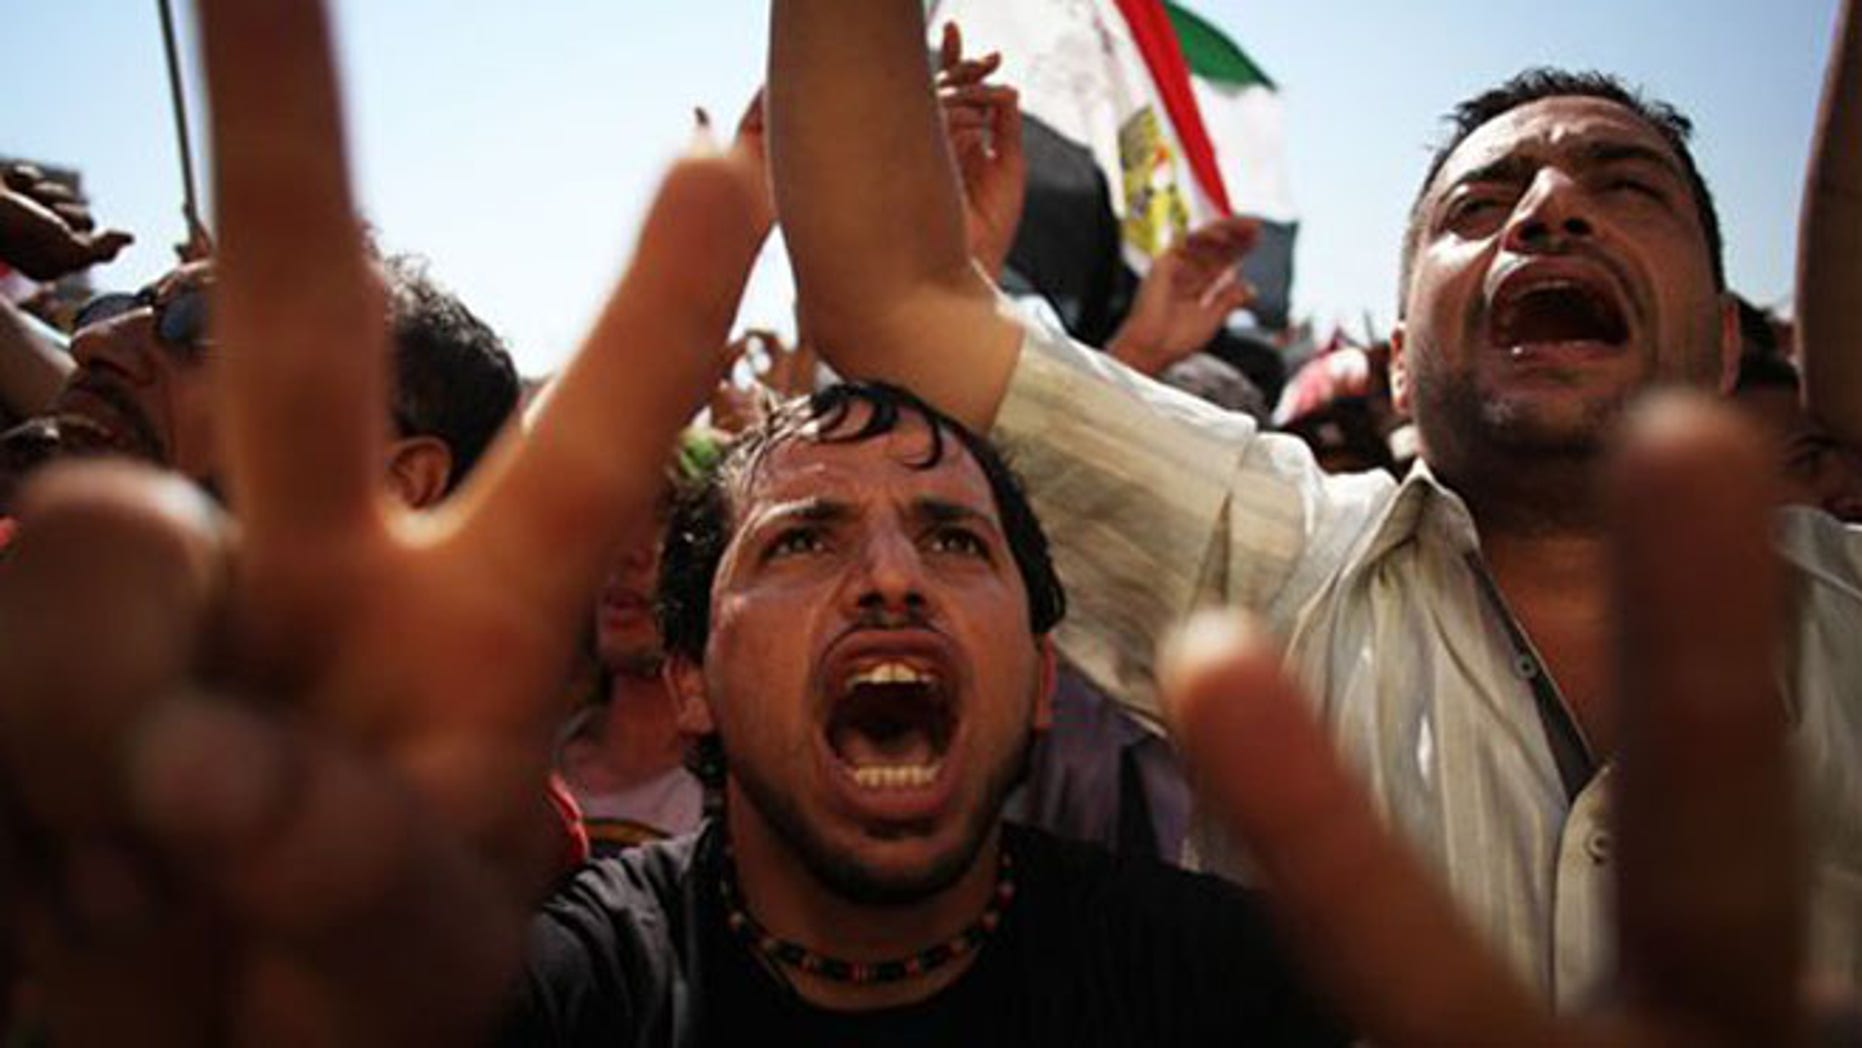 June 24, 2012: Egyptians celebrate the victory of Mohammed Morsi in the presidential election in Tahrir square, Cairo, Egypt.